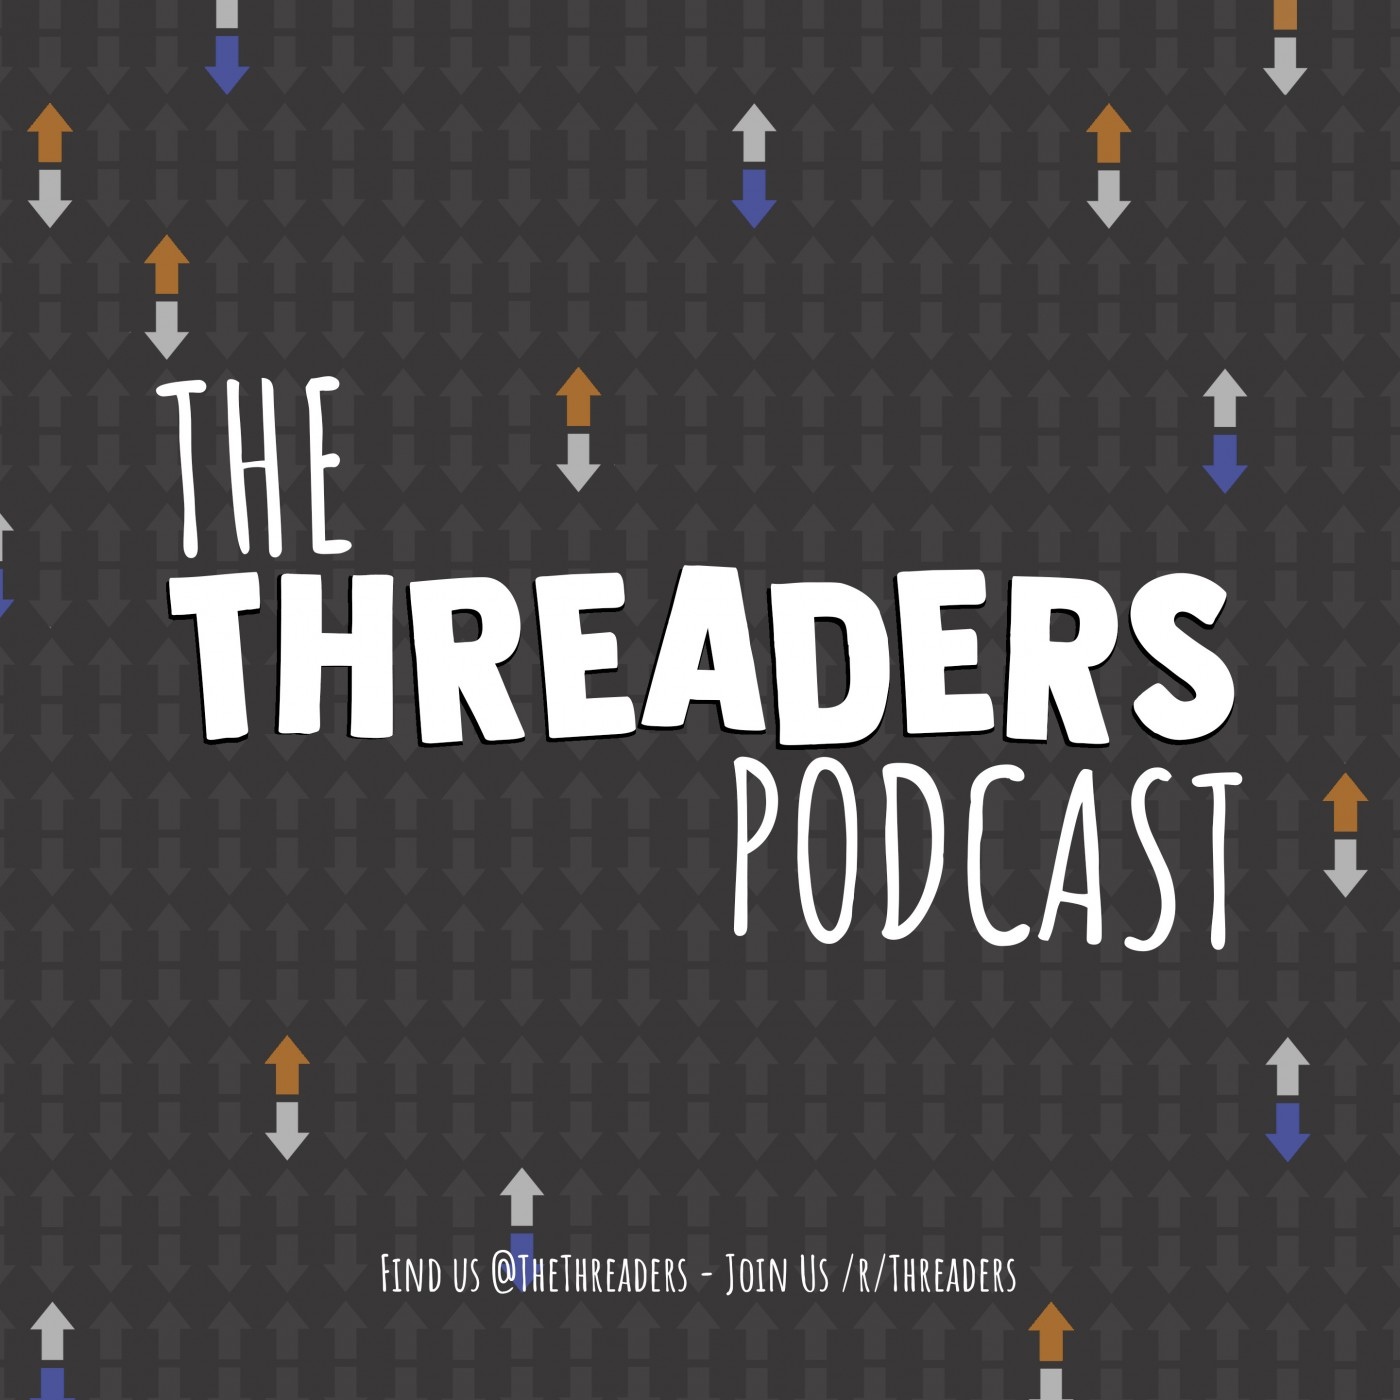 The Threaders Podcast - What we found on the internet this week